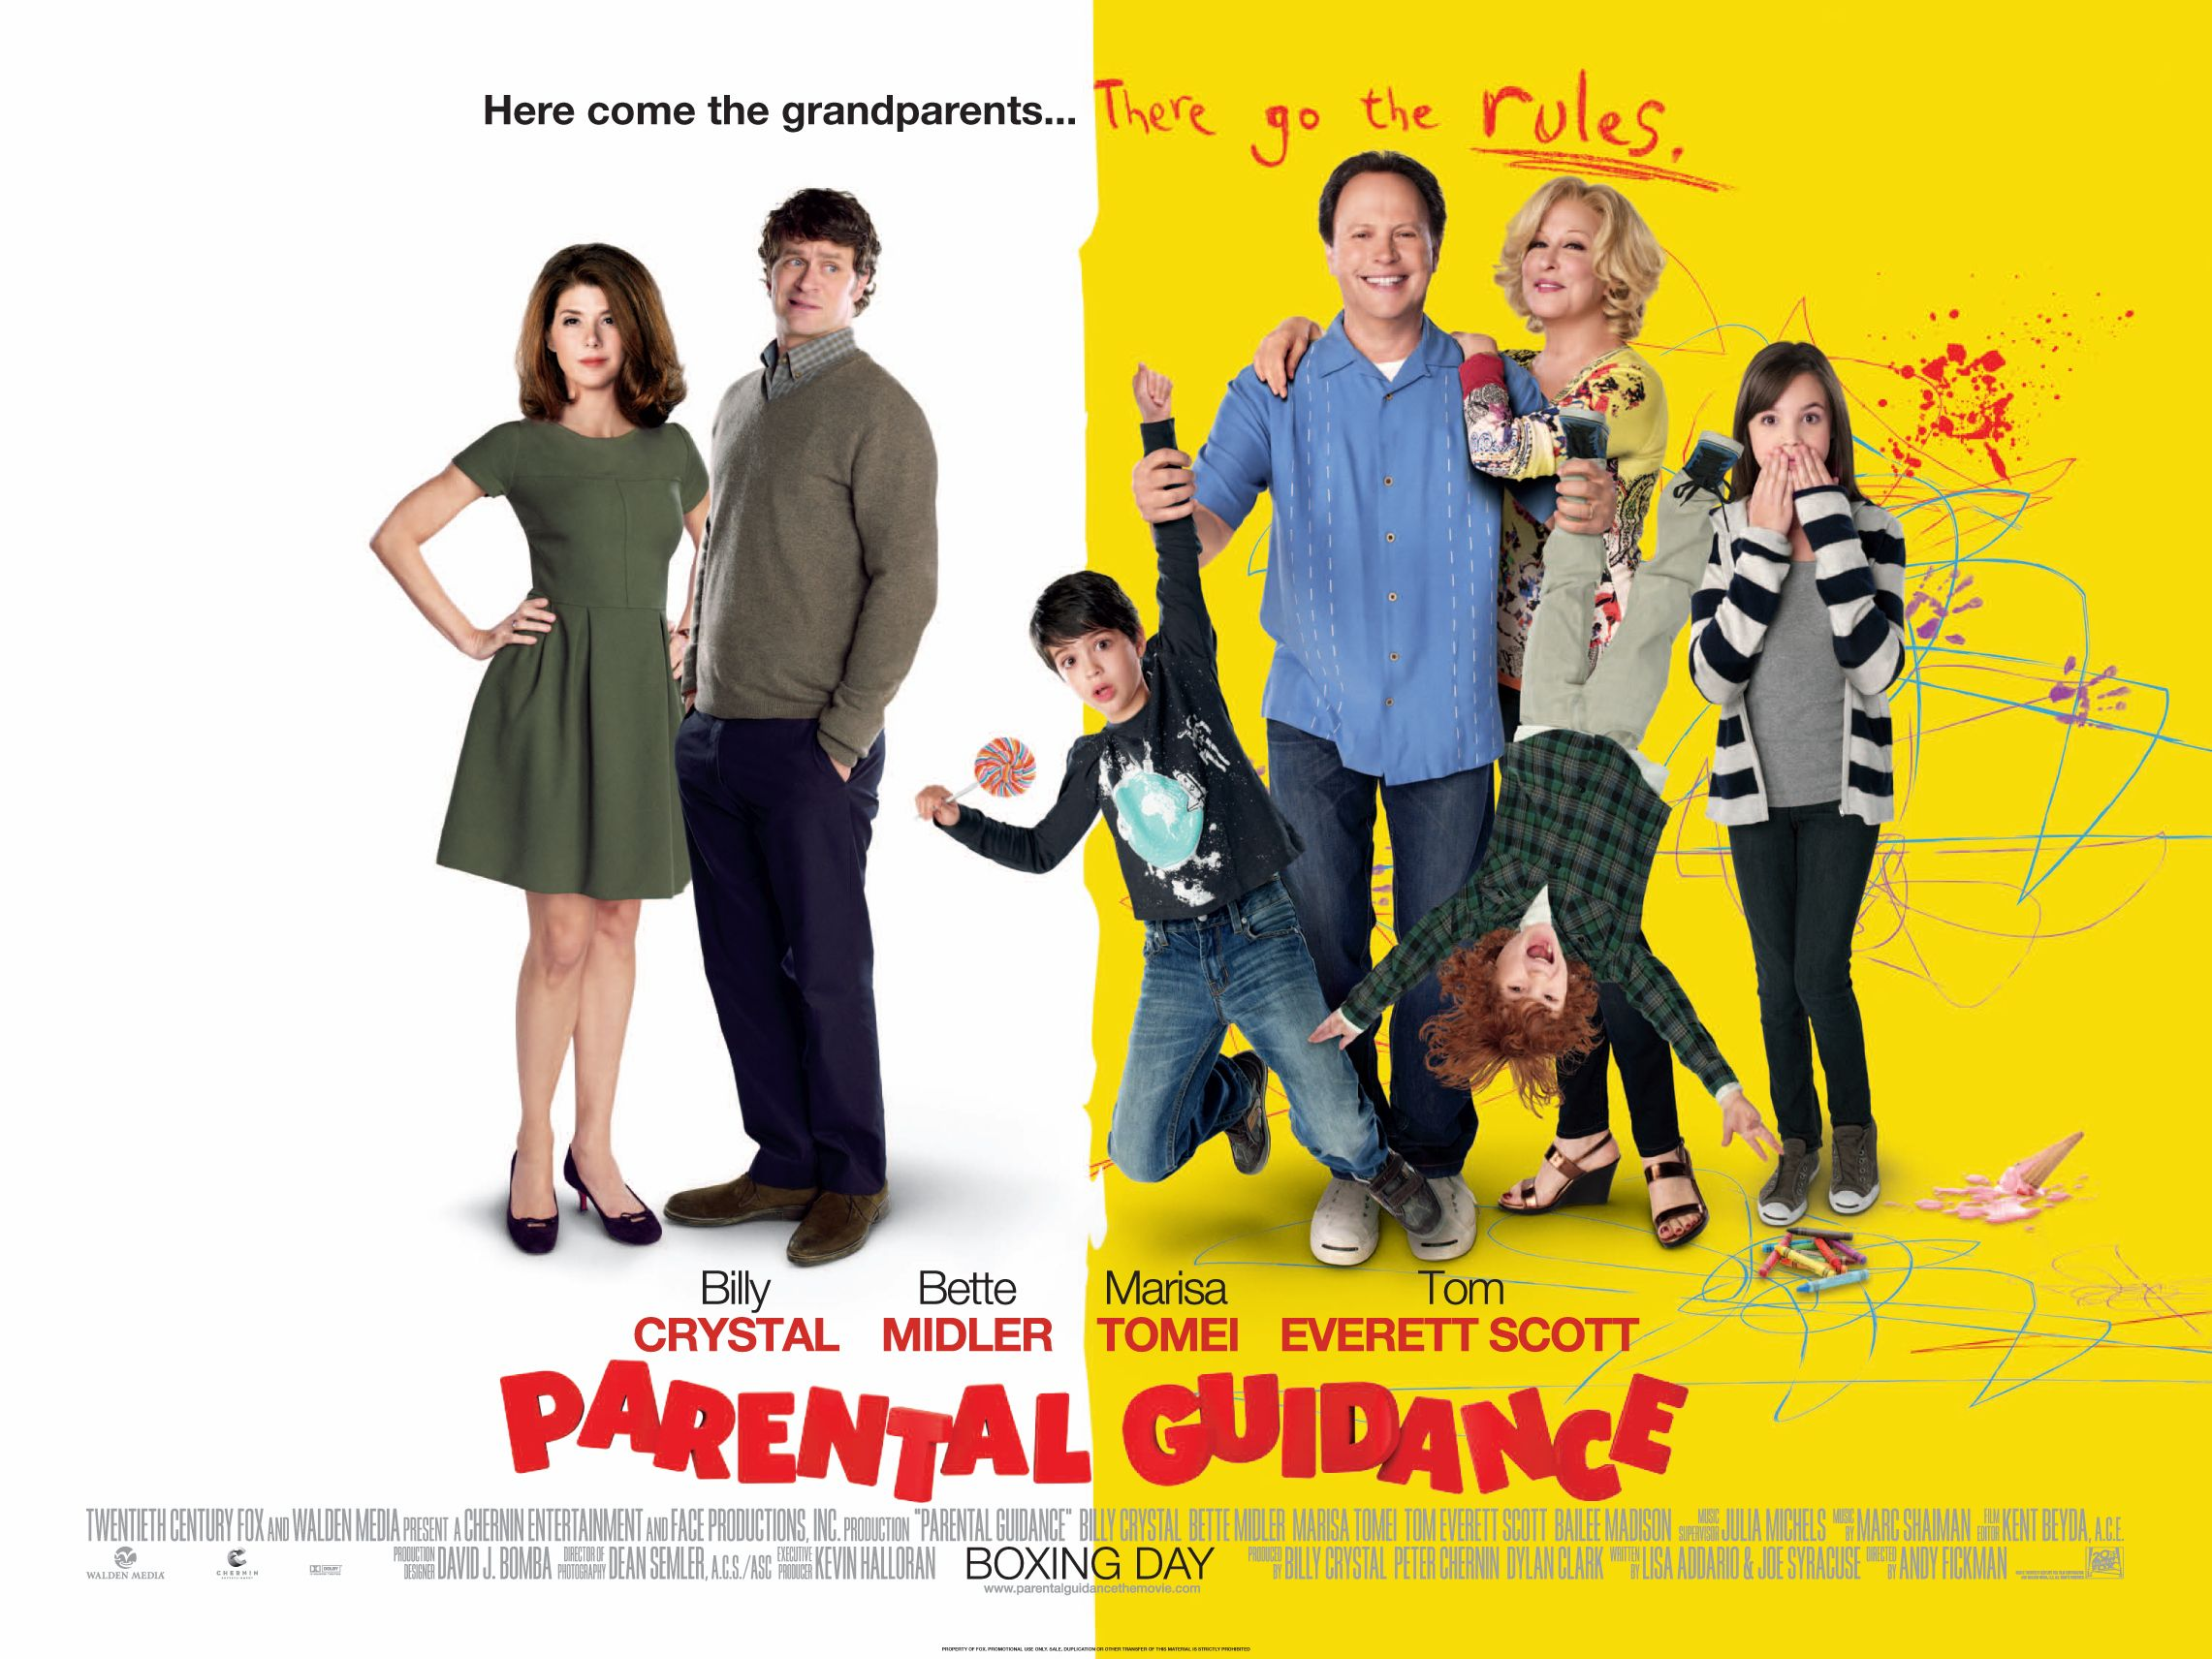 2019 year looks- Guidance Parental movie poster